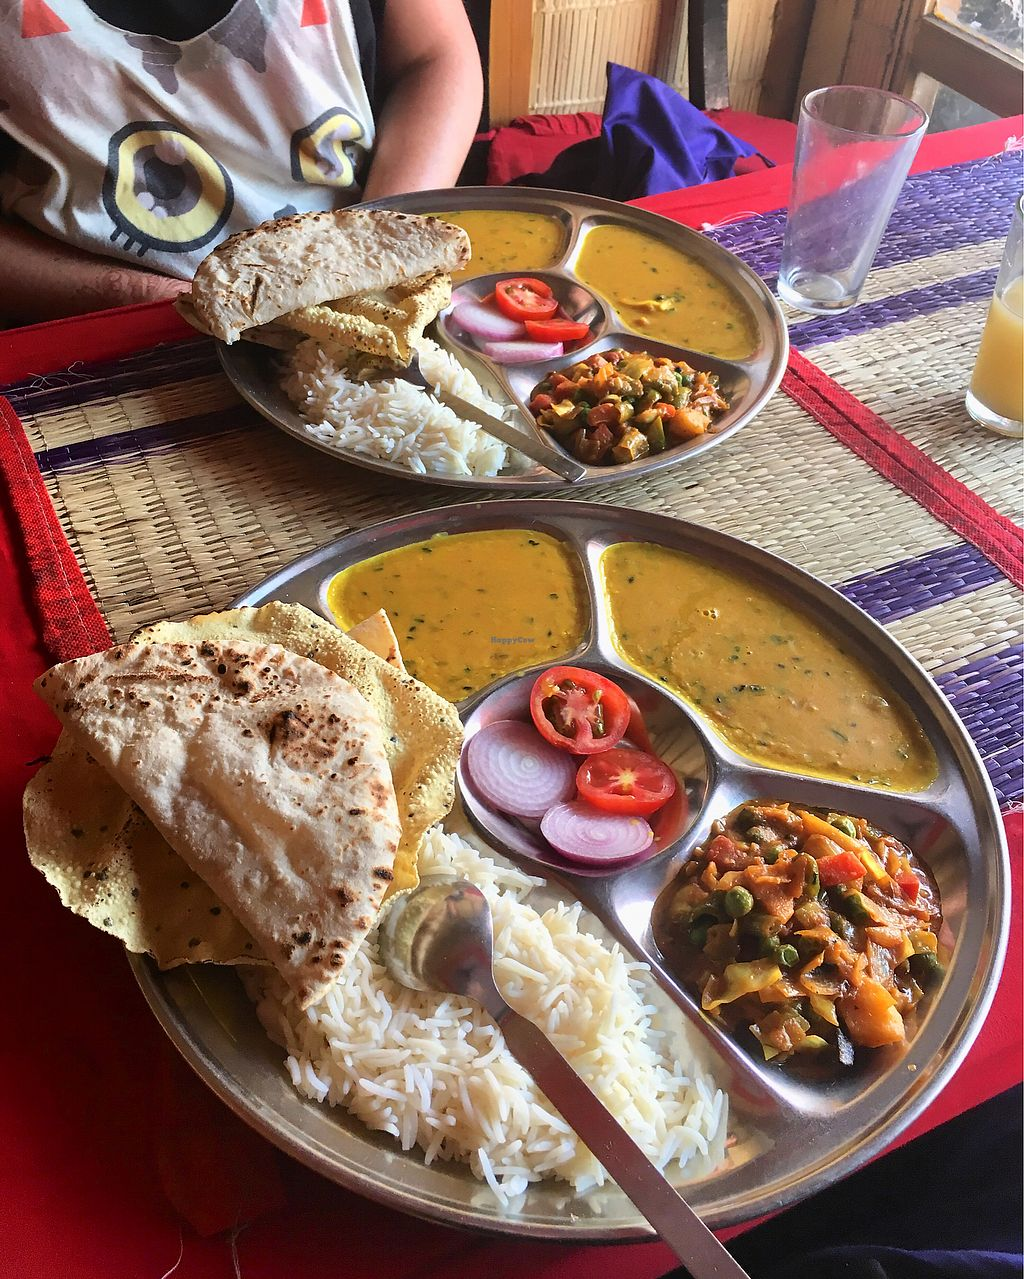 "Photo of Shankara Vegis  by <a href=""/members/profile/CamilaSilvaL"">CamilaSilvaL</a> <br/>Thali (140 rupees for all!!!) <br/> March 11, 2018  - <a href='/contact/abuse/image/32289/369133'>Report</a>"